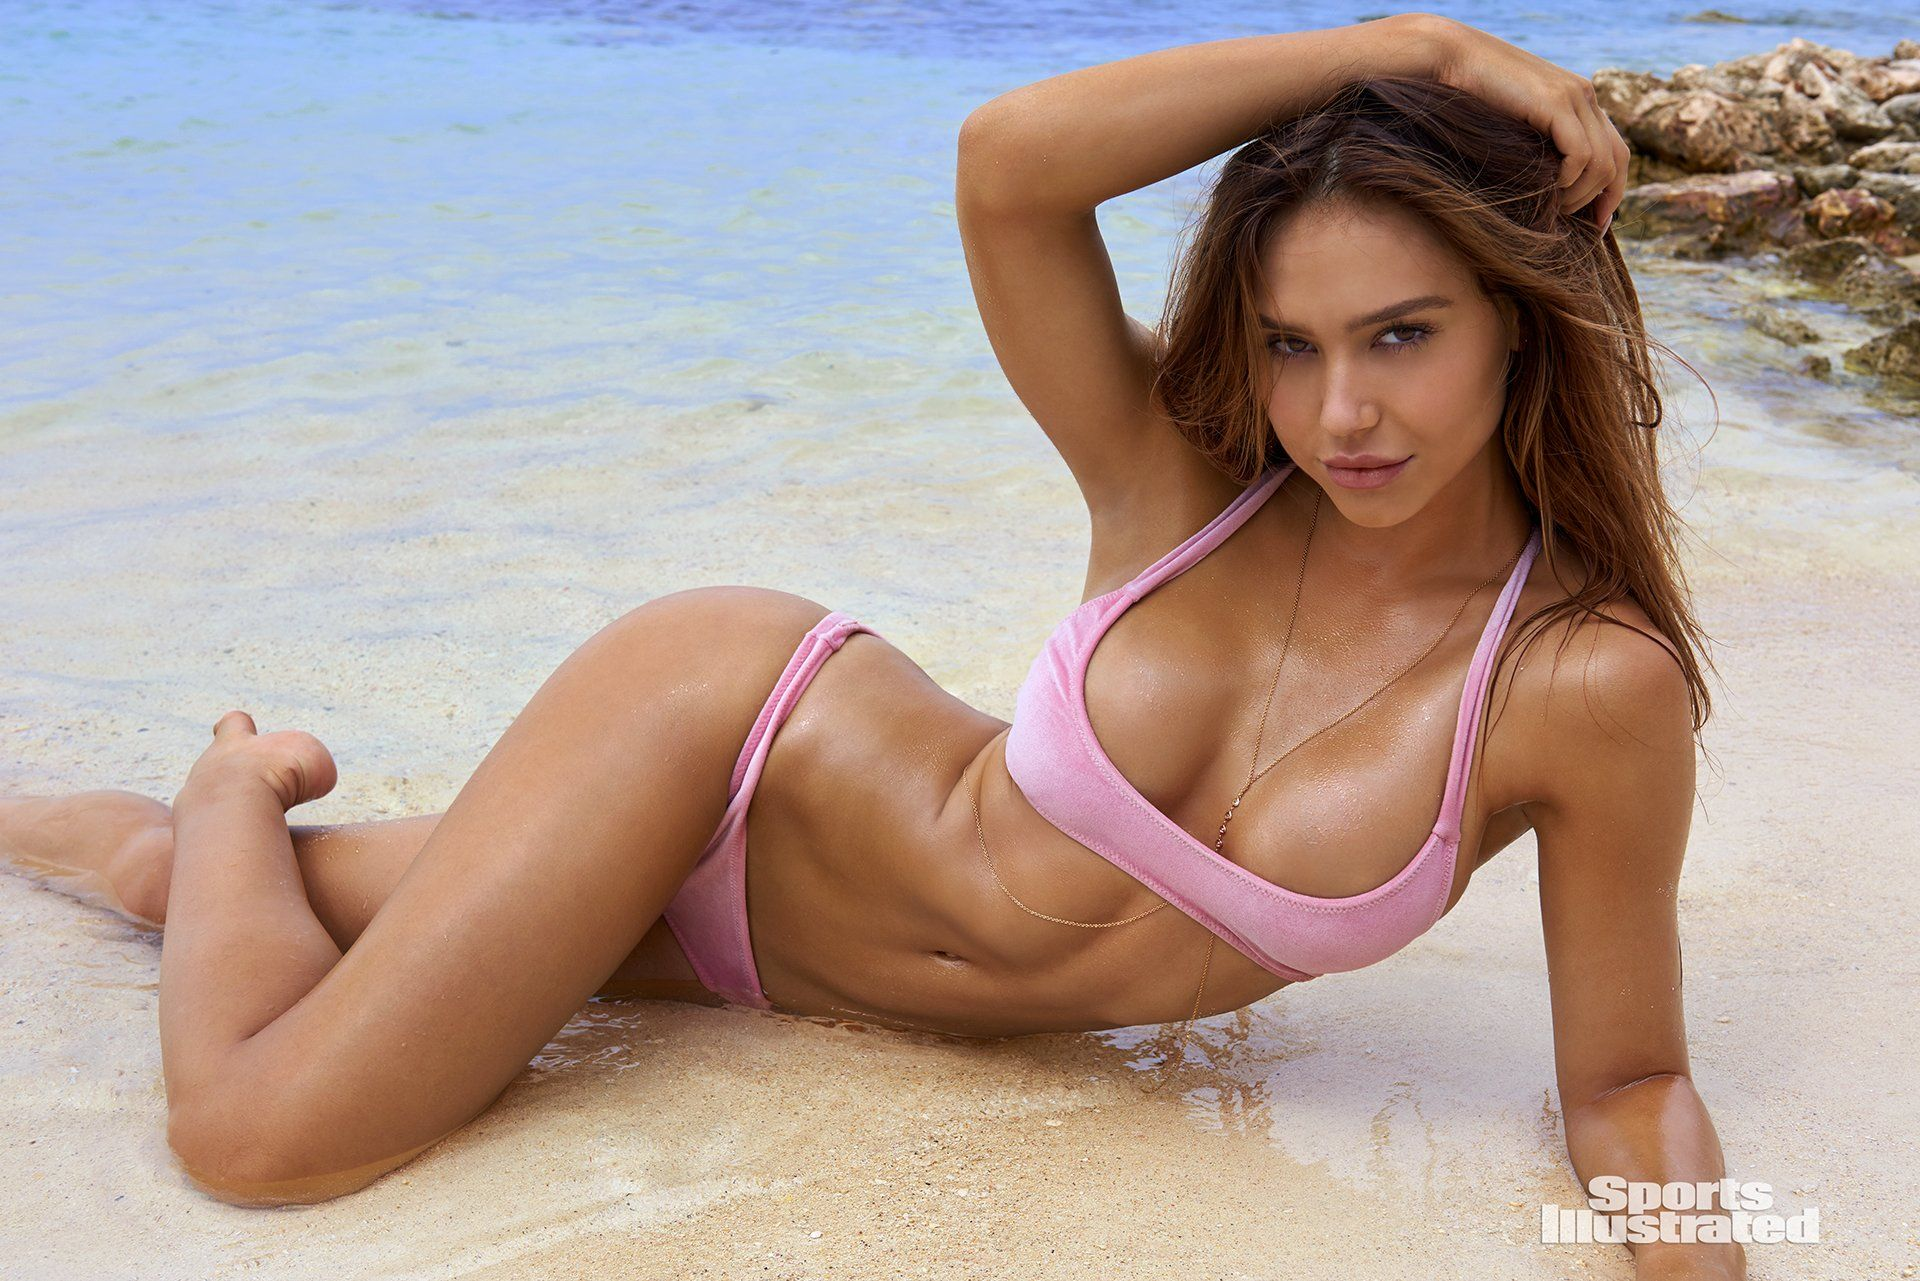 Rookie of the Year: Alexis Ren posiert in der Sports Illustrated Swimsuit Edition 2018 1